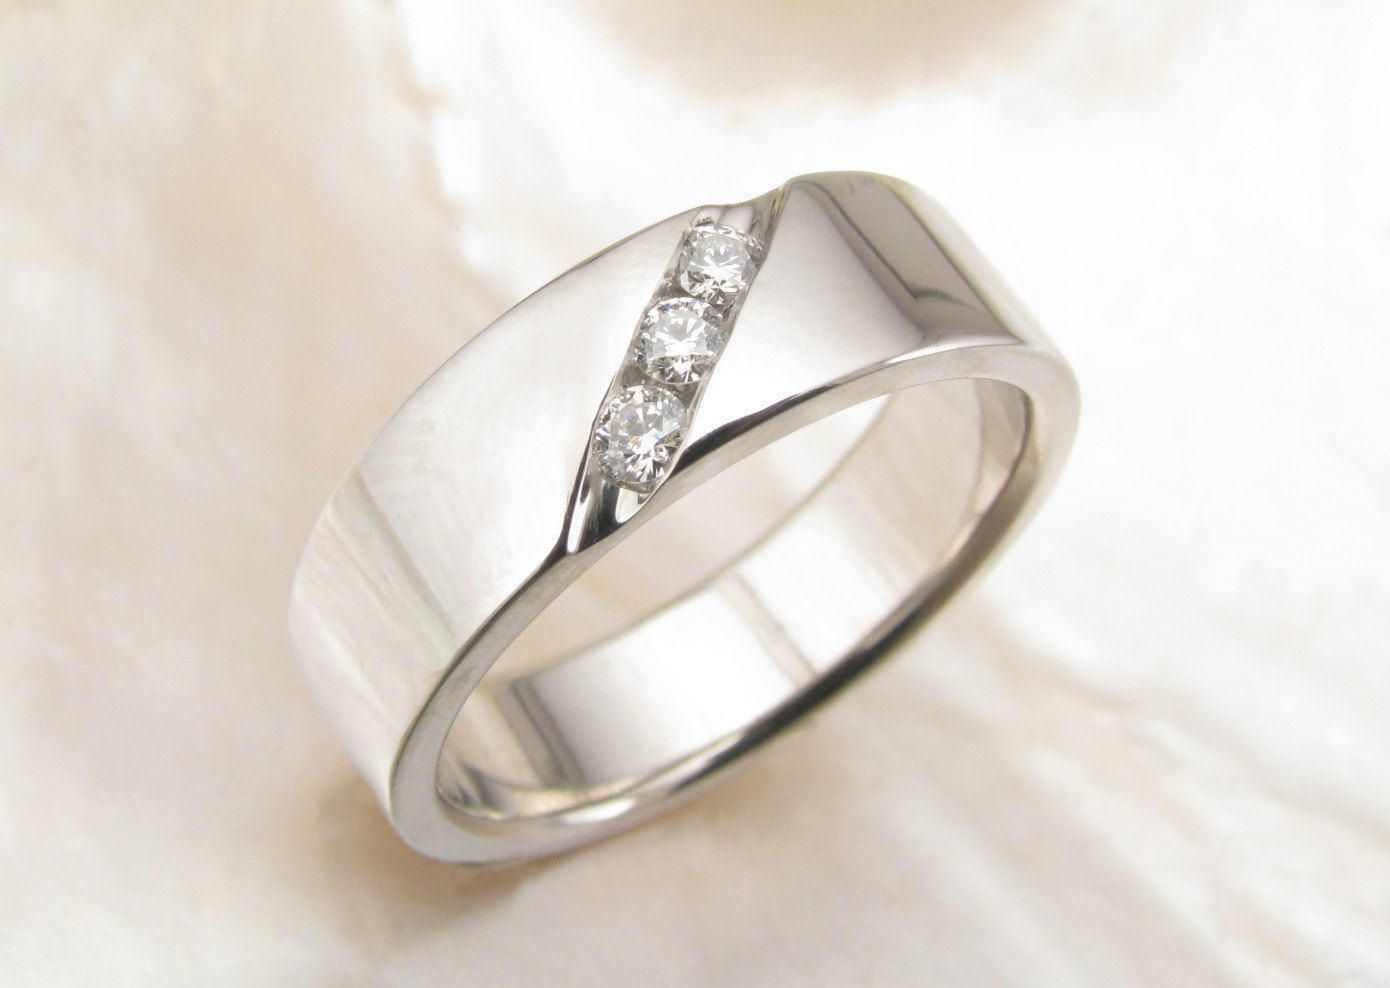 men's wedding band with channel-set diamonds in palladium ...